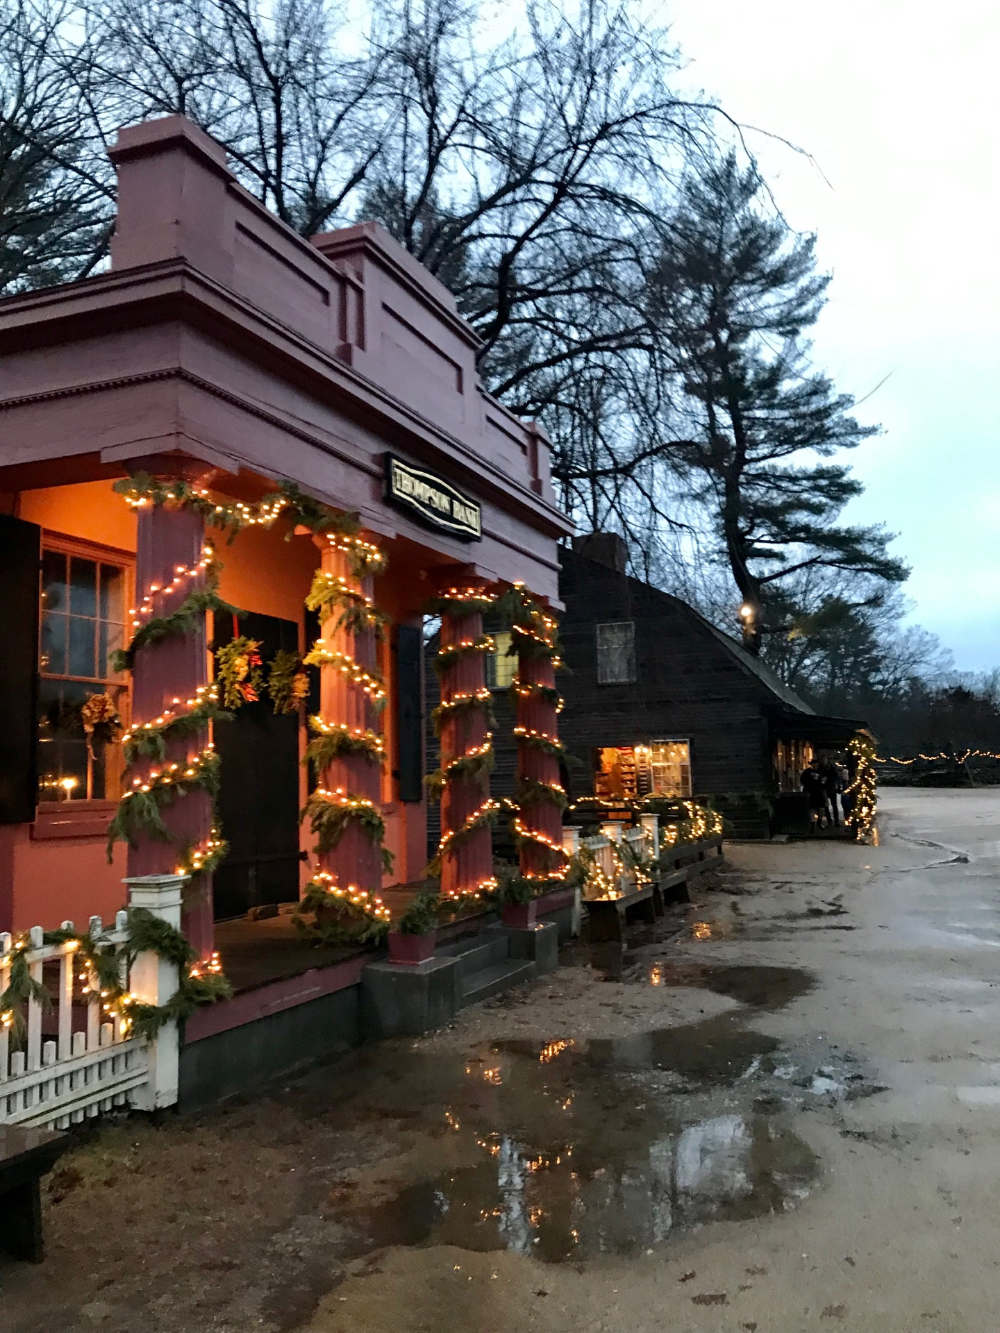 Christmas By Candlelight Awaits In Historical New England